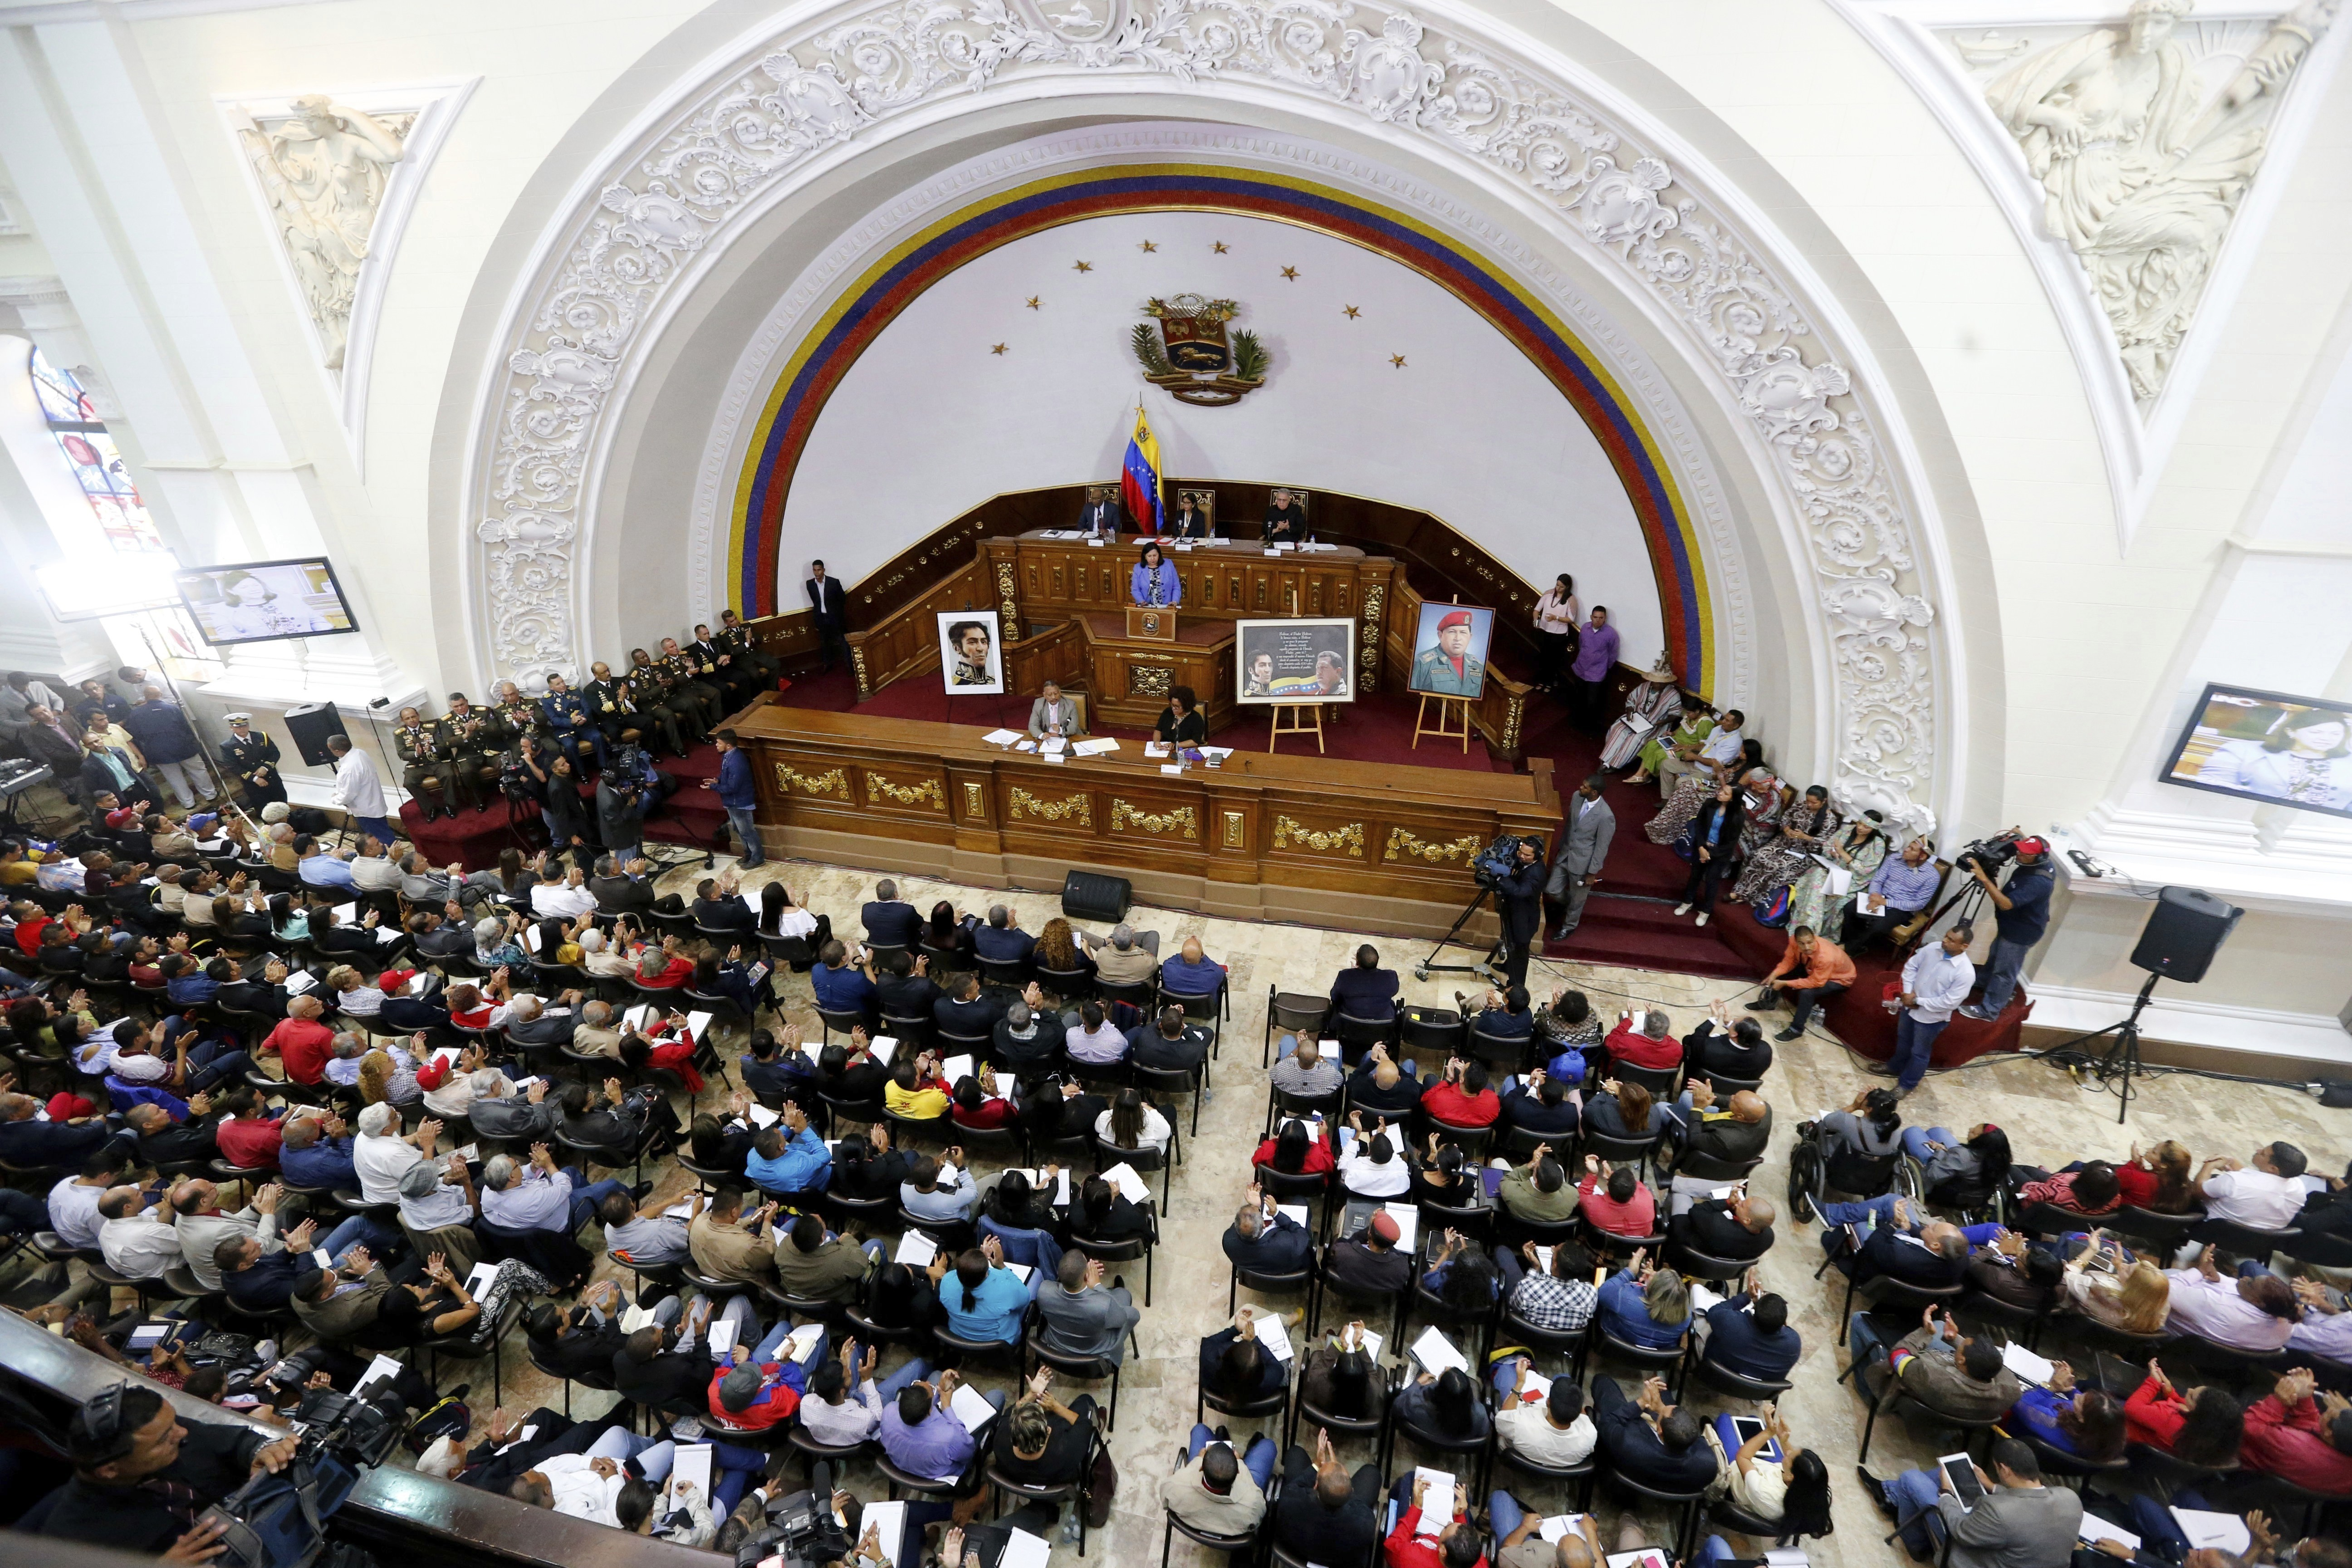 APTOPIX Venezuela Political Crisis Constitutional Assembly delegate Carmen Melendez speaks from the podium during a session in Caracas, Venezuela, Tuesday, Aug. 8, 2017. The government-backed assembly that is recasting Venezuela's political system filed into the stately domed chamber where congress normally meets. In two previous sessions, the 545-member assembly met in an adjacent, smaller building. (AP Photo/Ariana Cubillos)